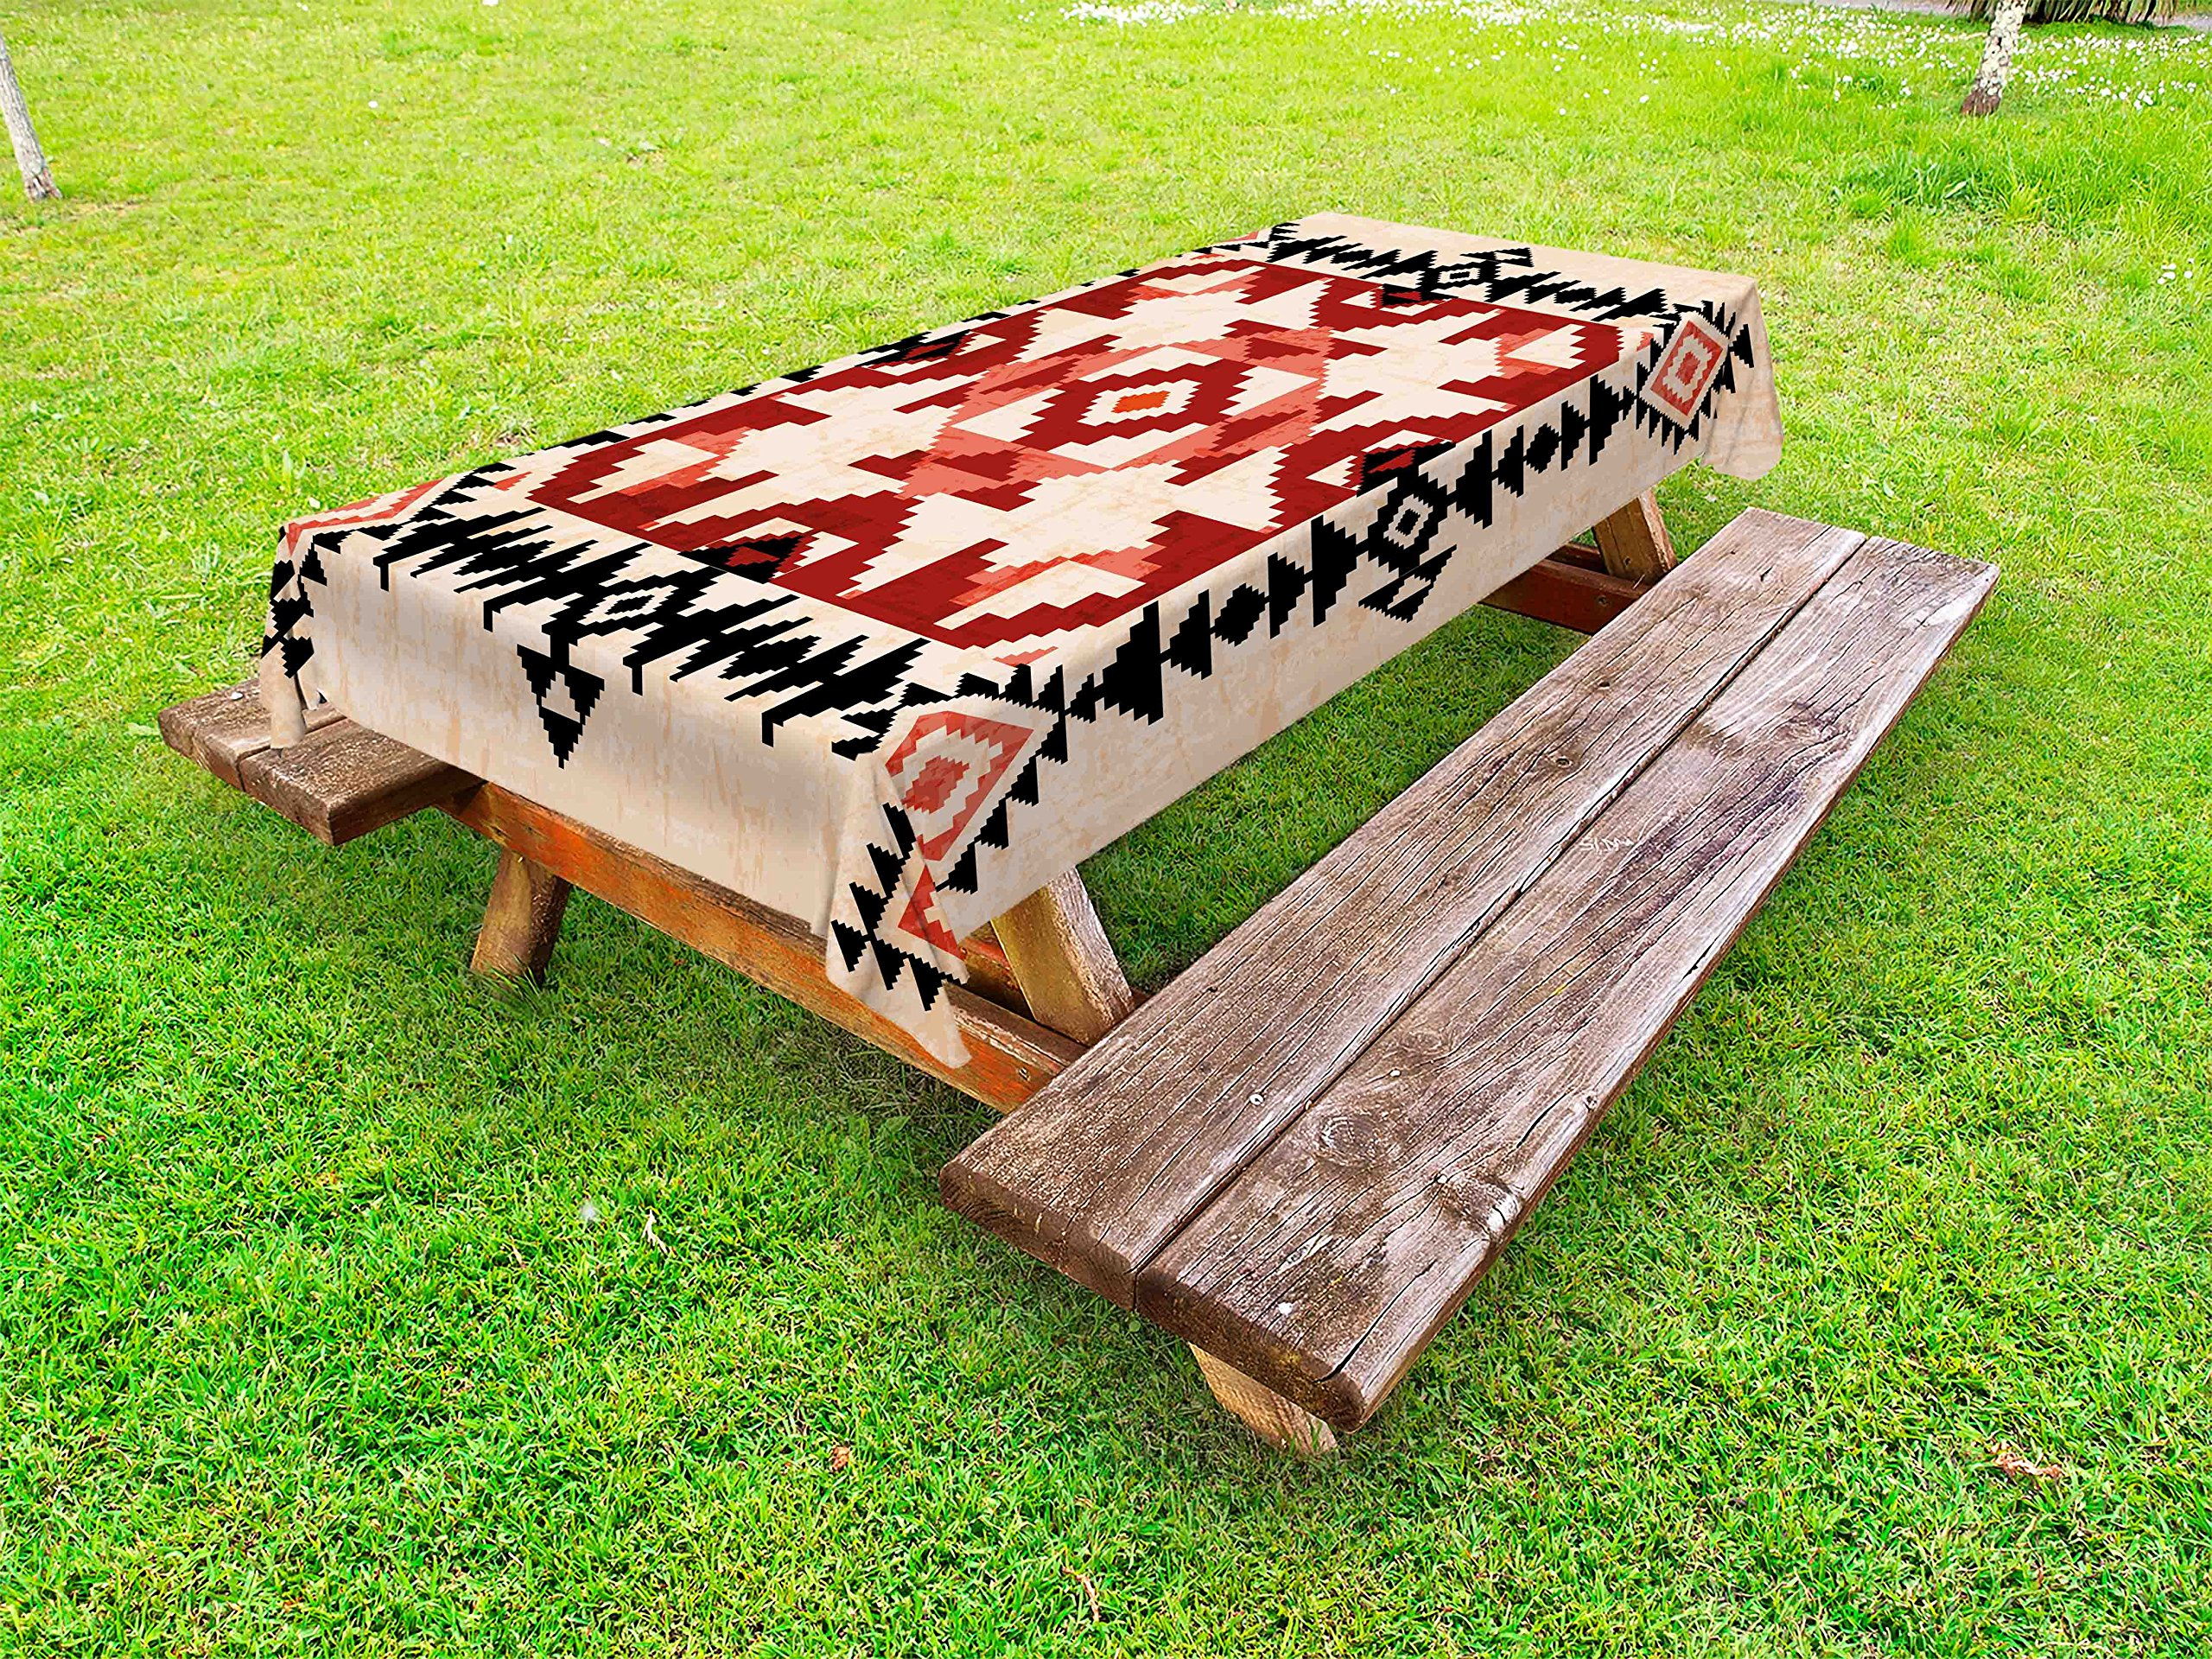 Lunarable Geometric Outdoor Tablecloth, Ethnic Pattern with Rhombuses Squares Ornamental Native American Design, Decorative Washable Picnic Table Cloth, 58 X 84 Inches, Peach Black Ruby